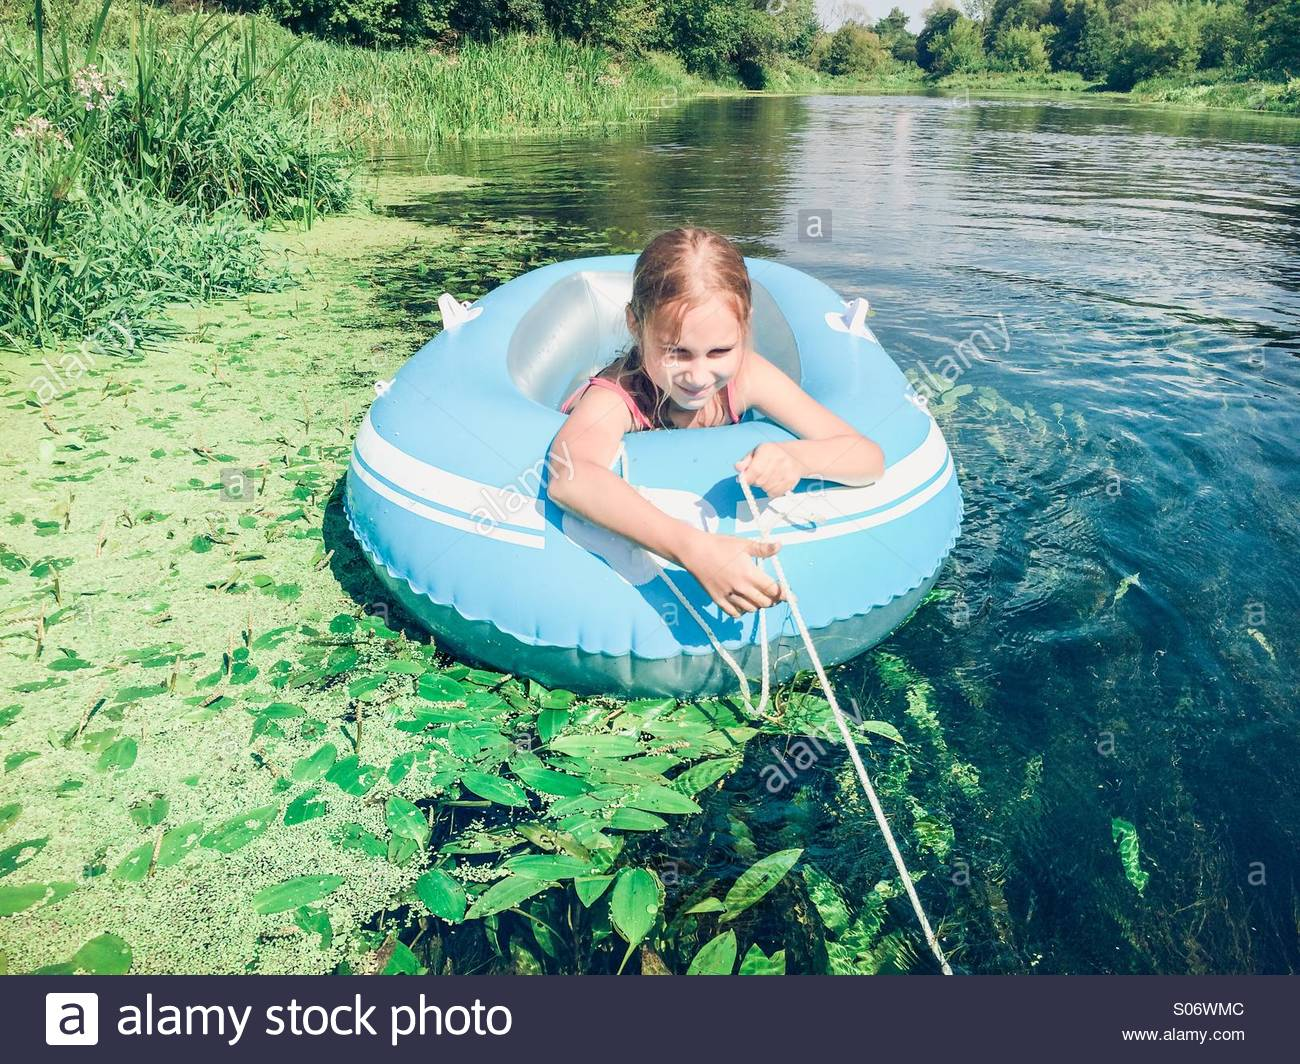 Little girl sitting in a raft on a pure river - Stock Image